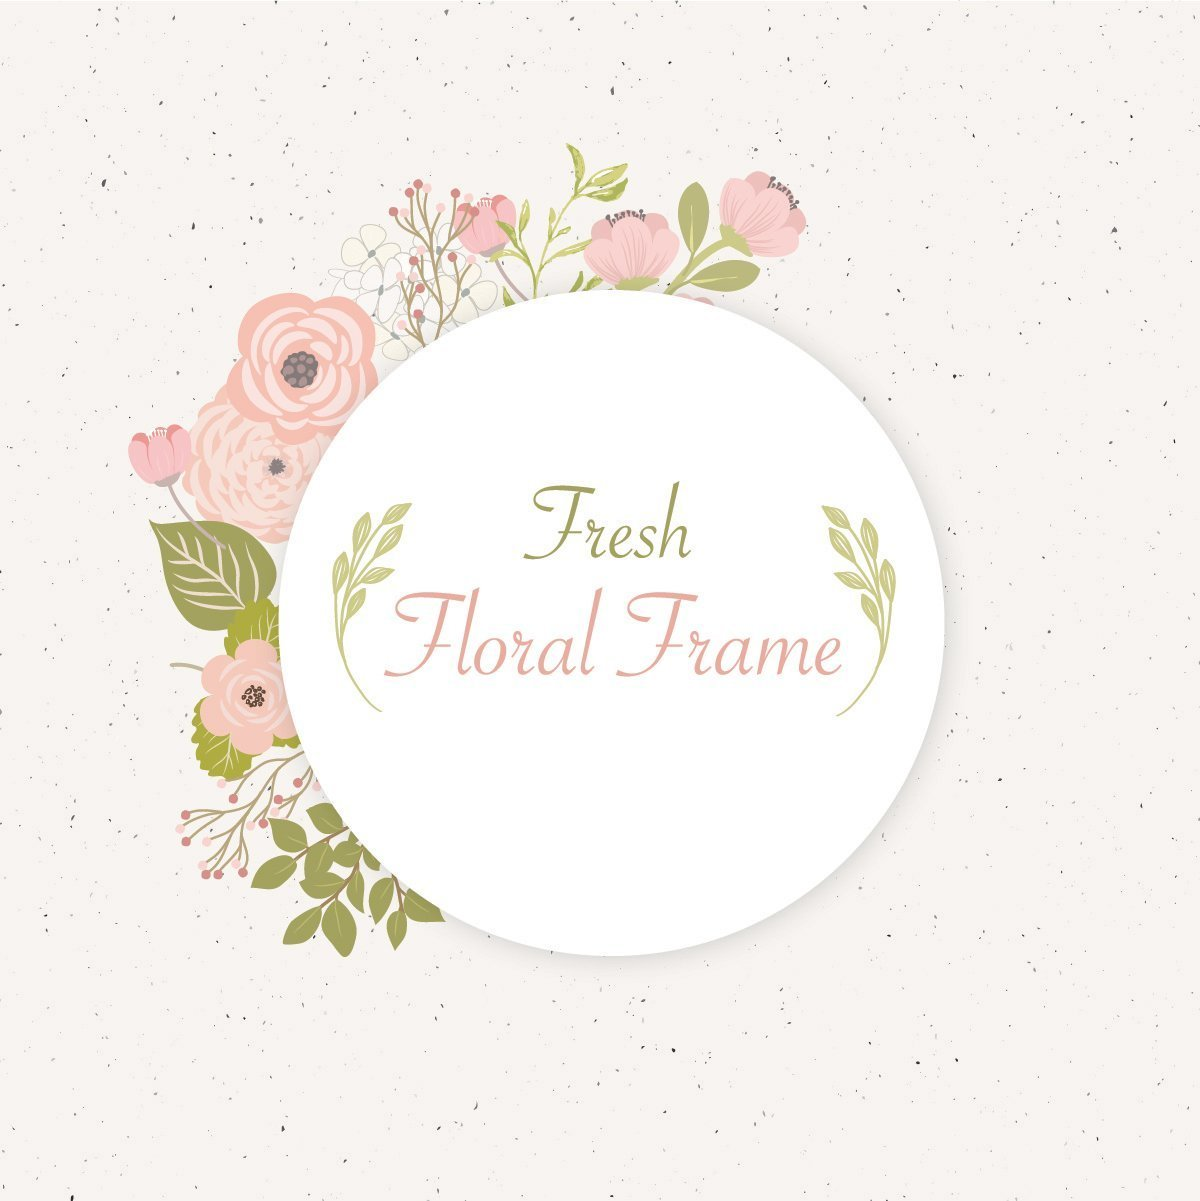 Fresh Floral Frame Design